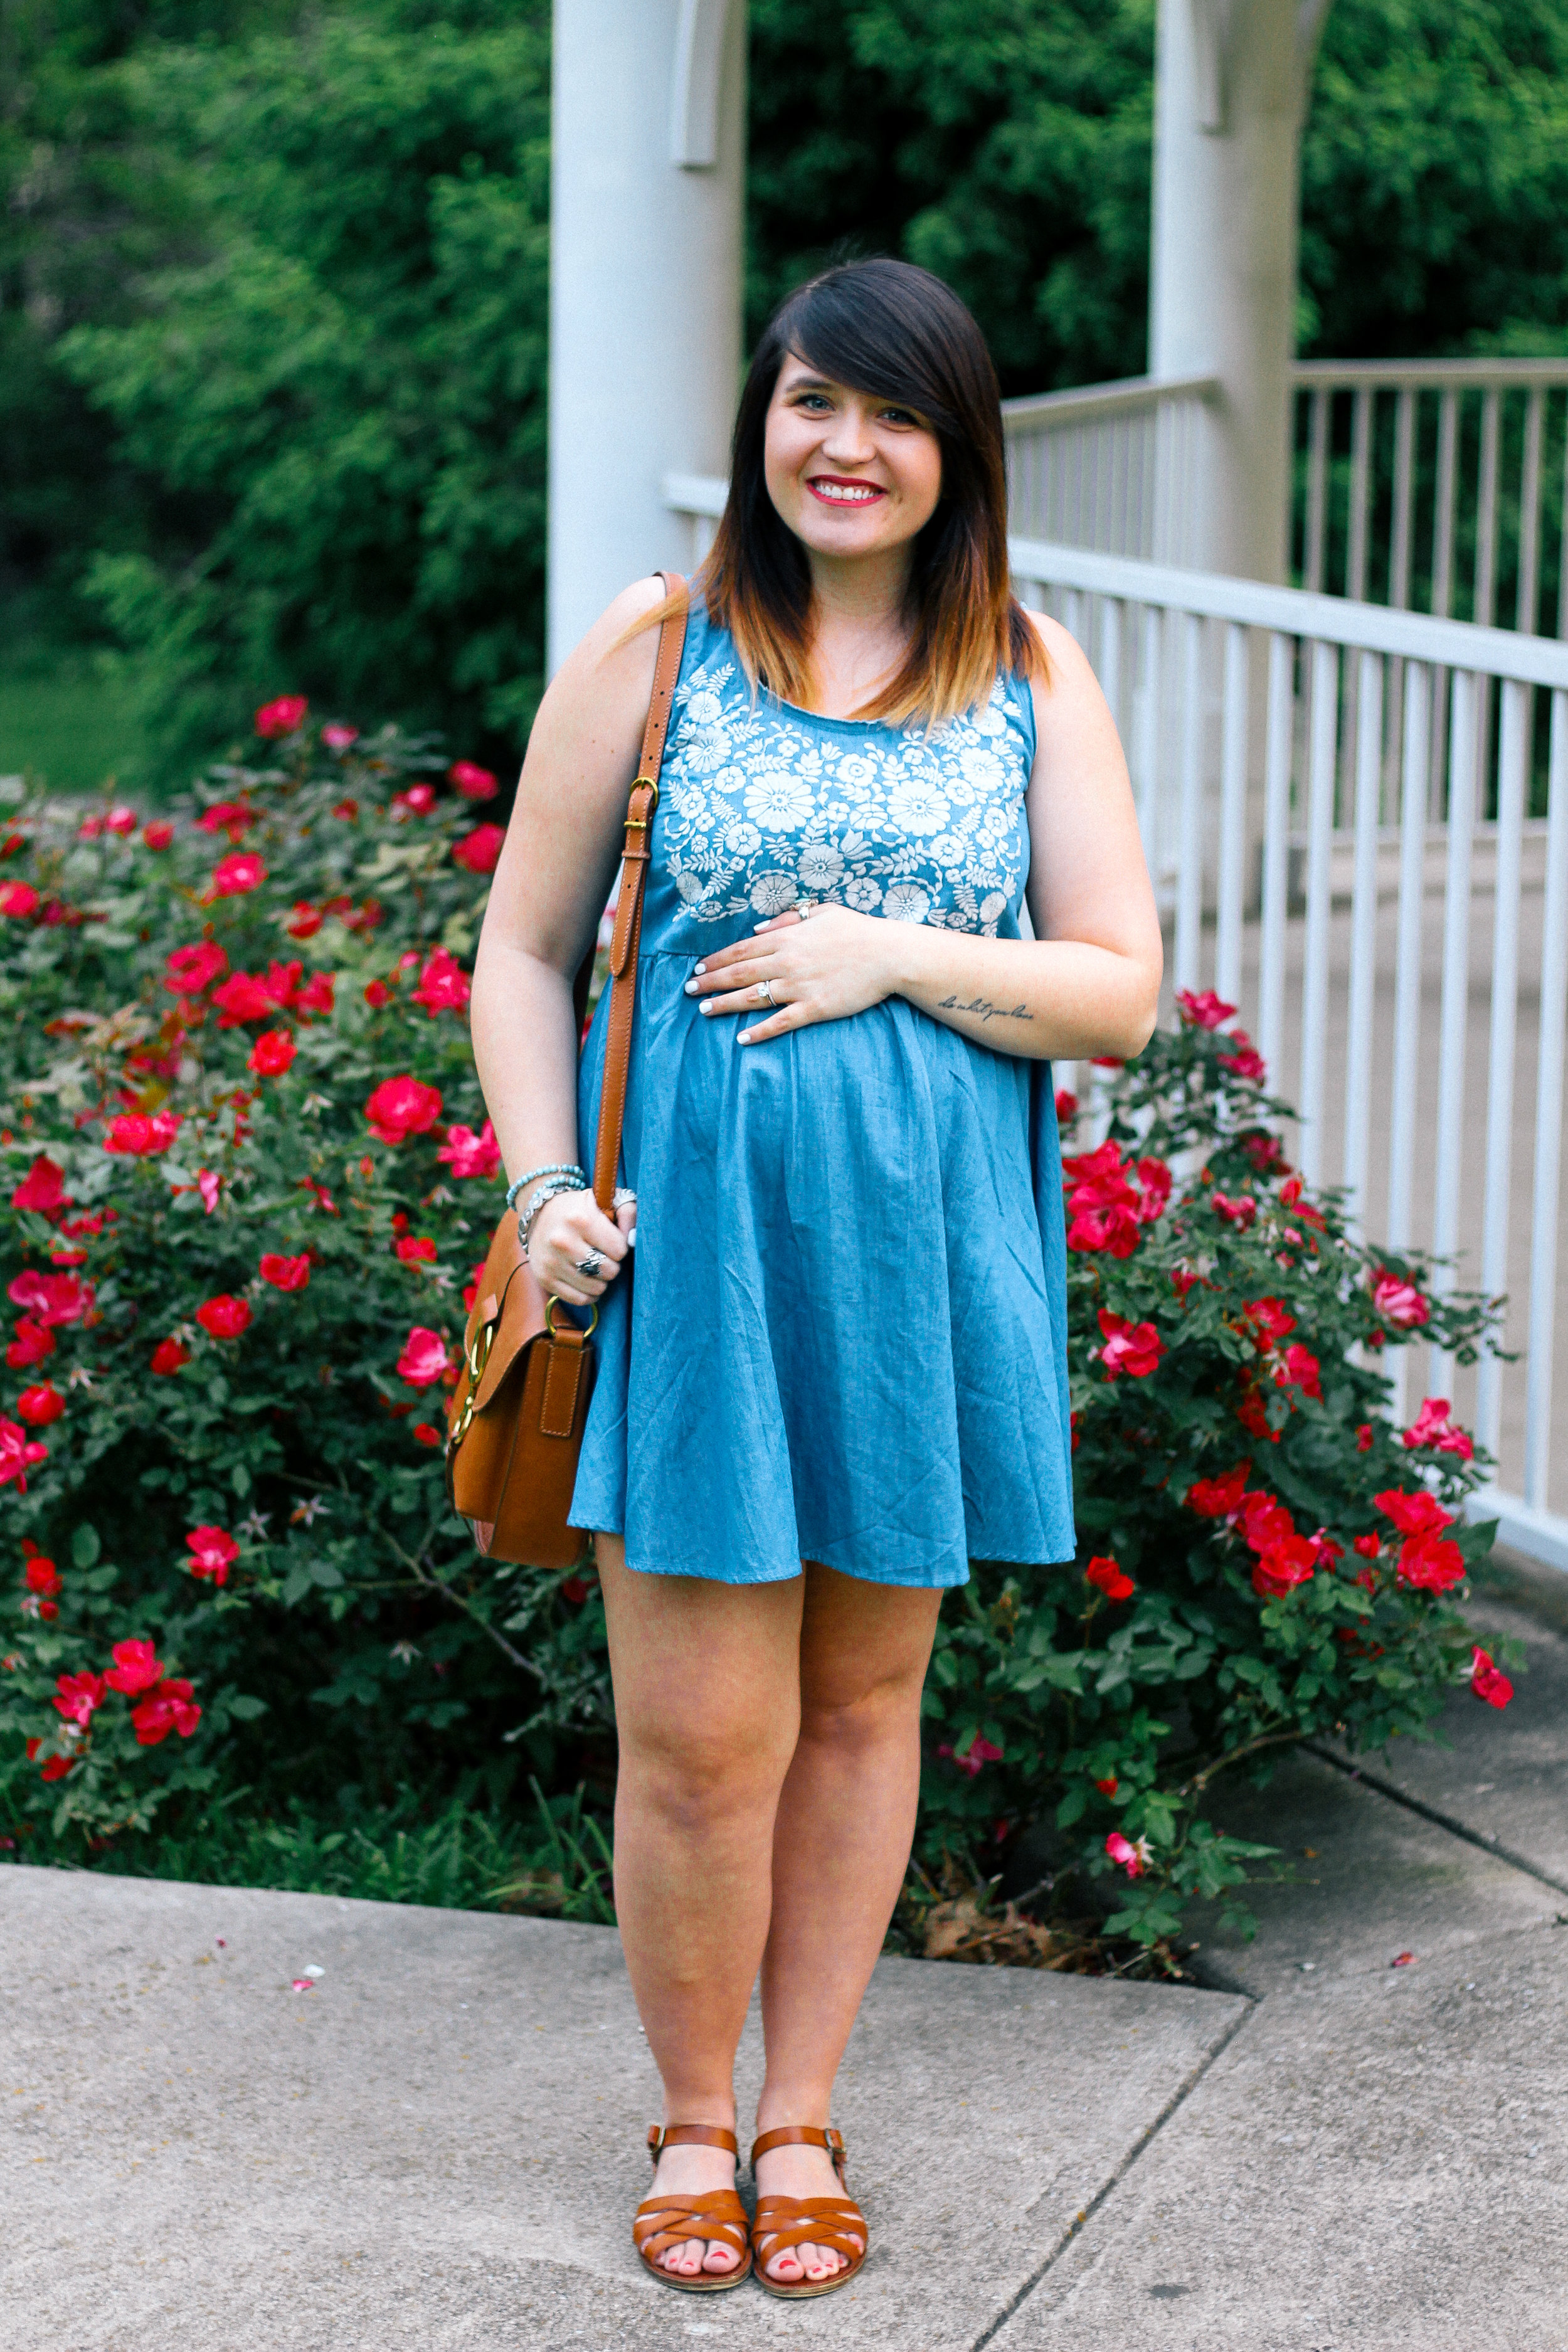 Embroidered Babydoll Chambray Dress Summer Style via www.chelceytate.com